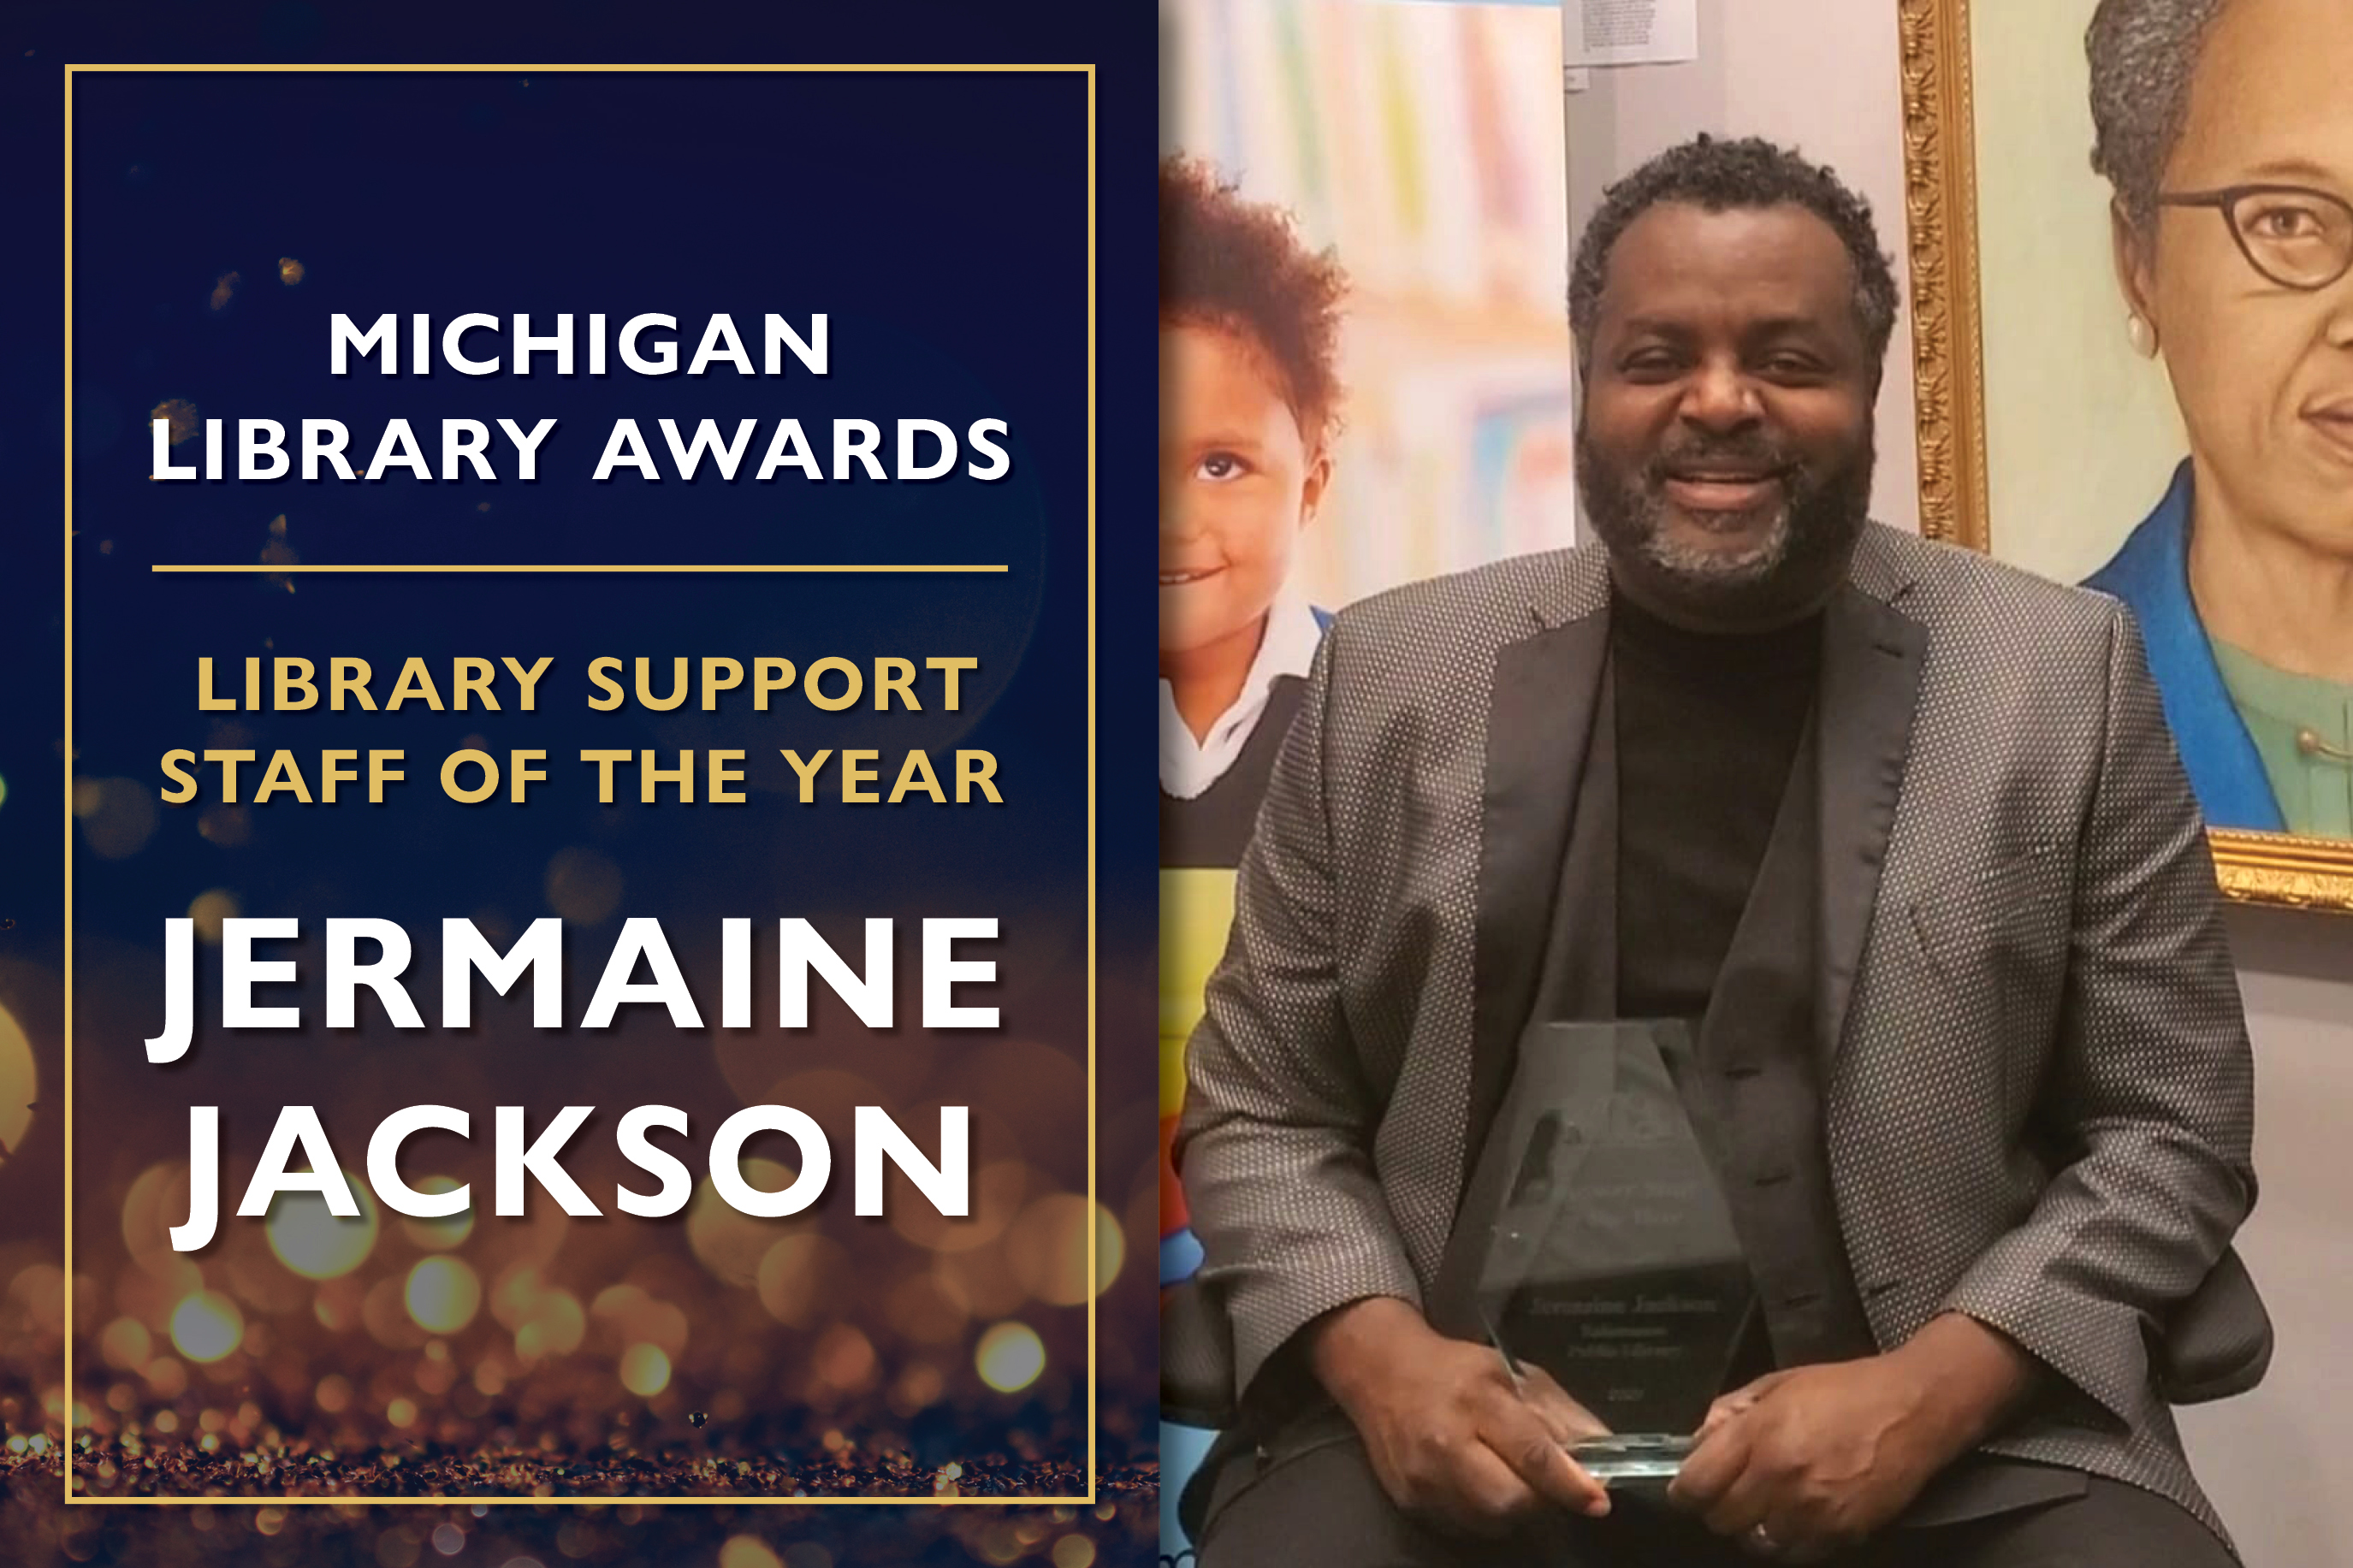 Library Support Staff of the Year  Jermaine Jackson, Library Assistant at the Kalamazoo Public Library